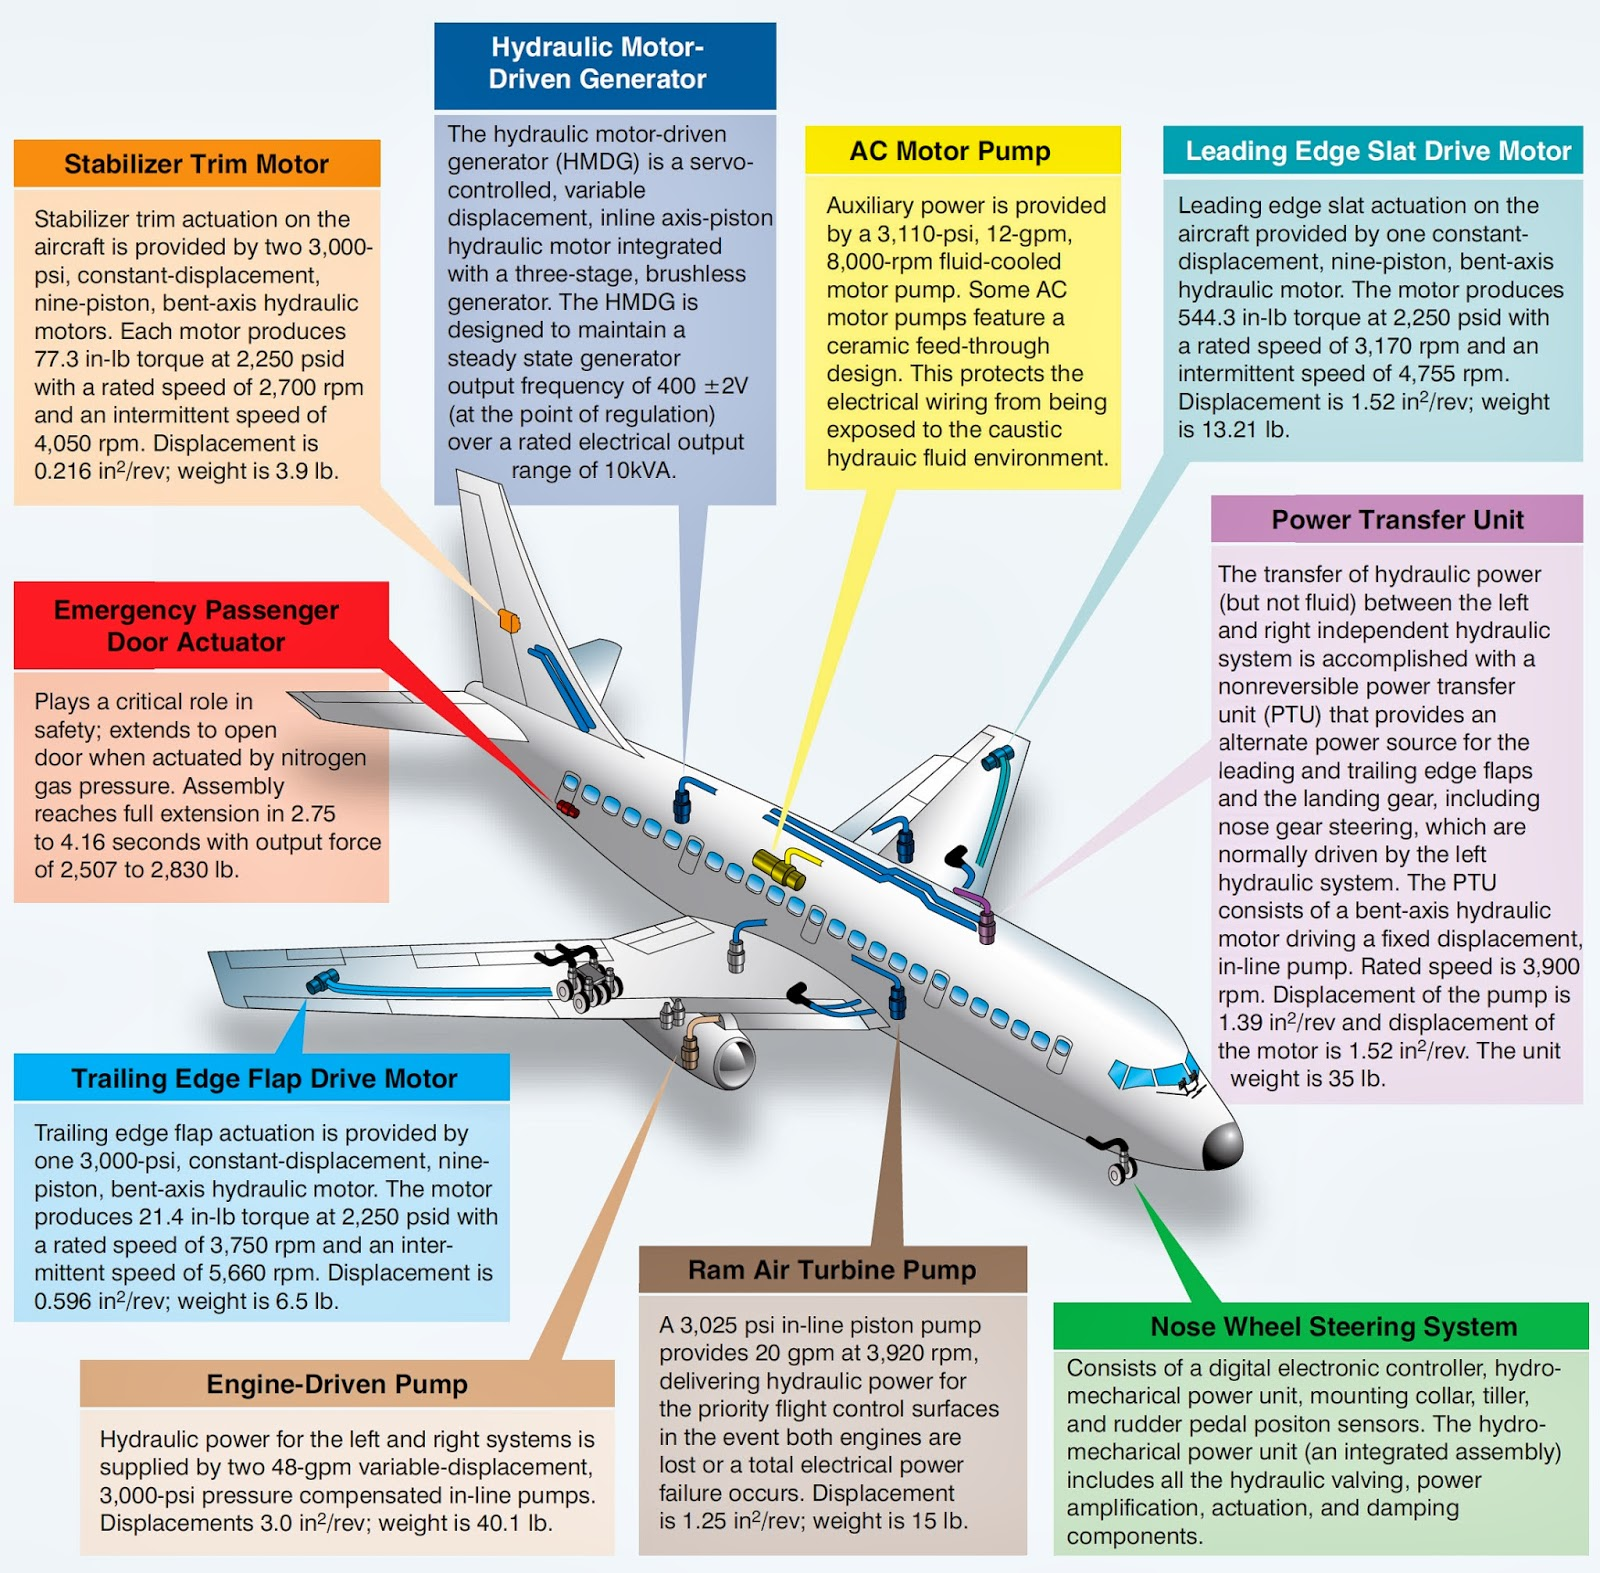 Large Aircraft Hydraulic Systems